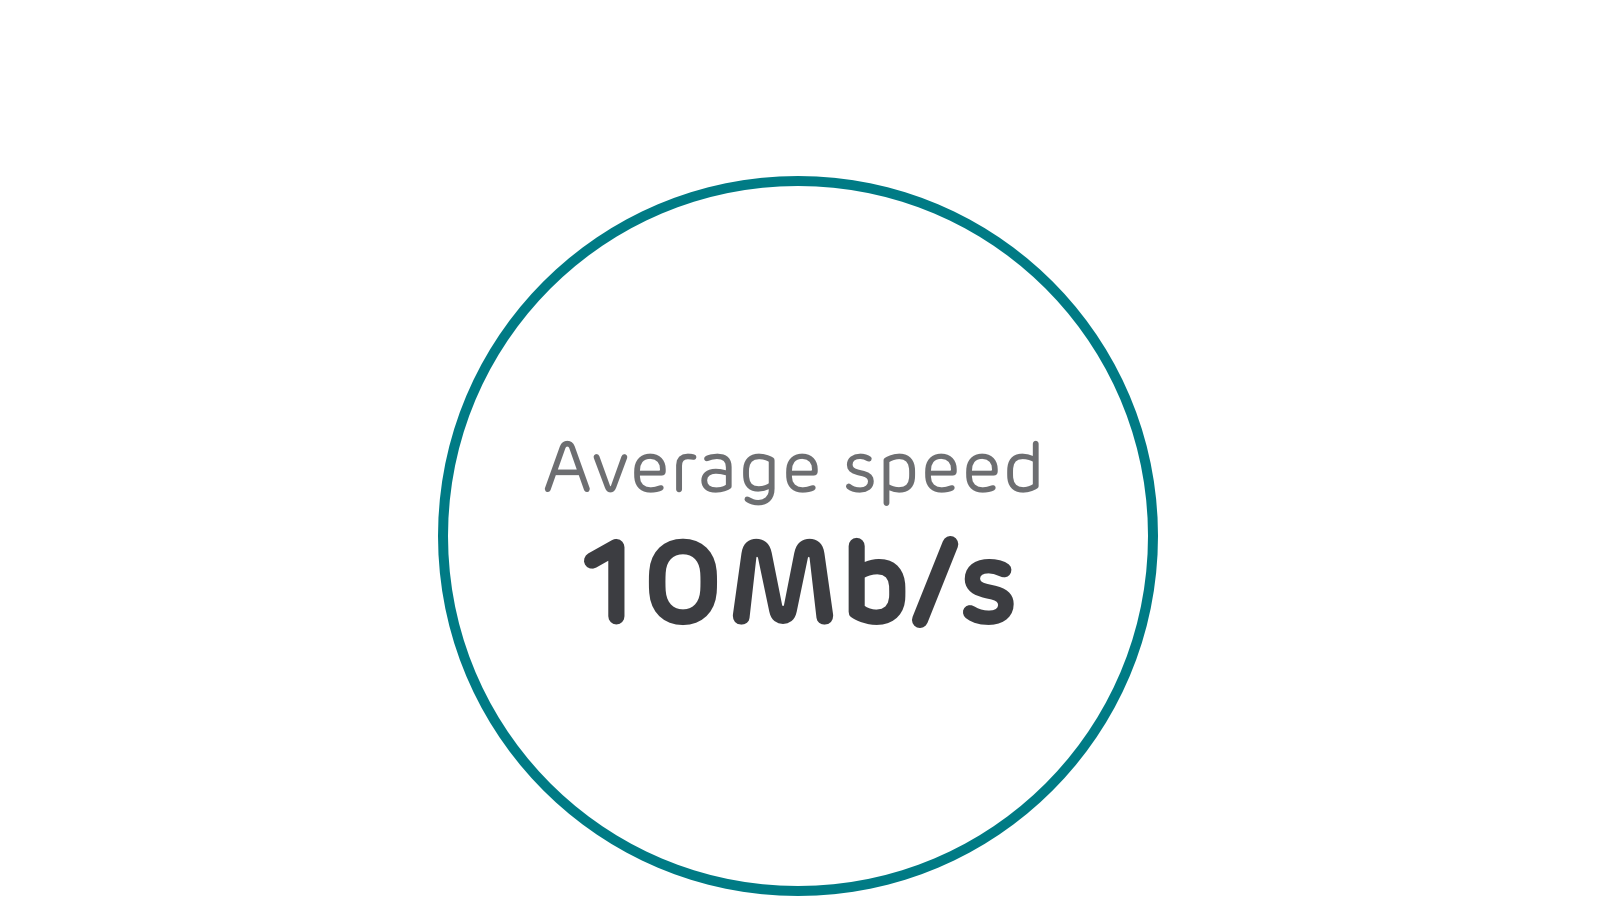 average speed 10mbs